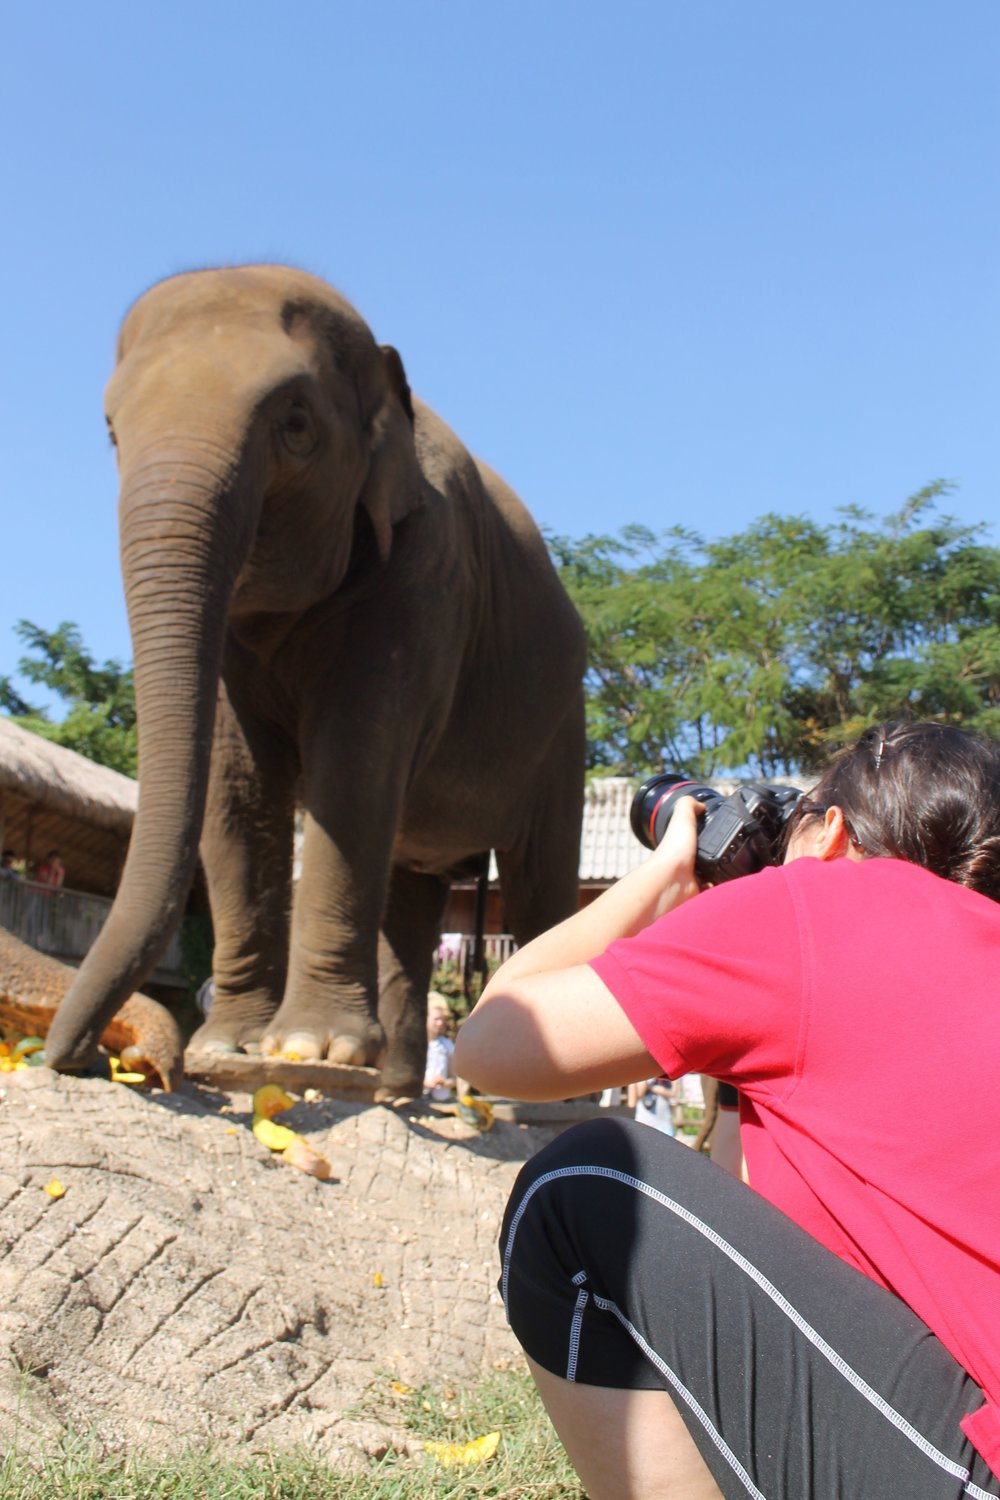 At the Elephant Nature Park in Chiang Mai, Thailand